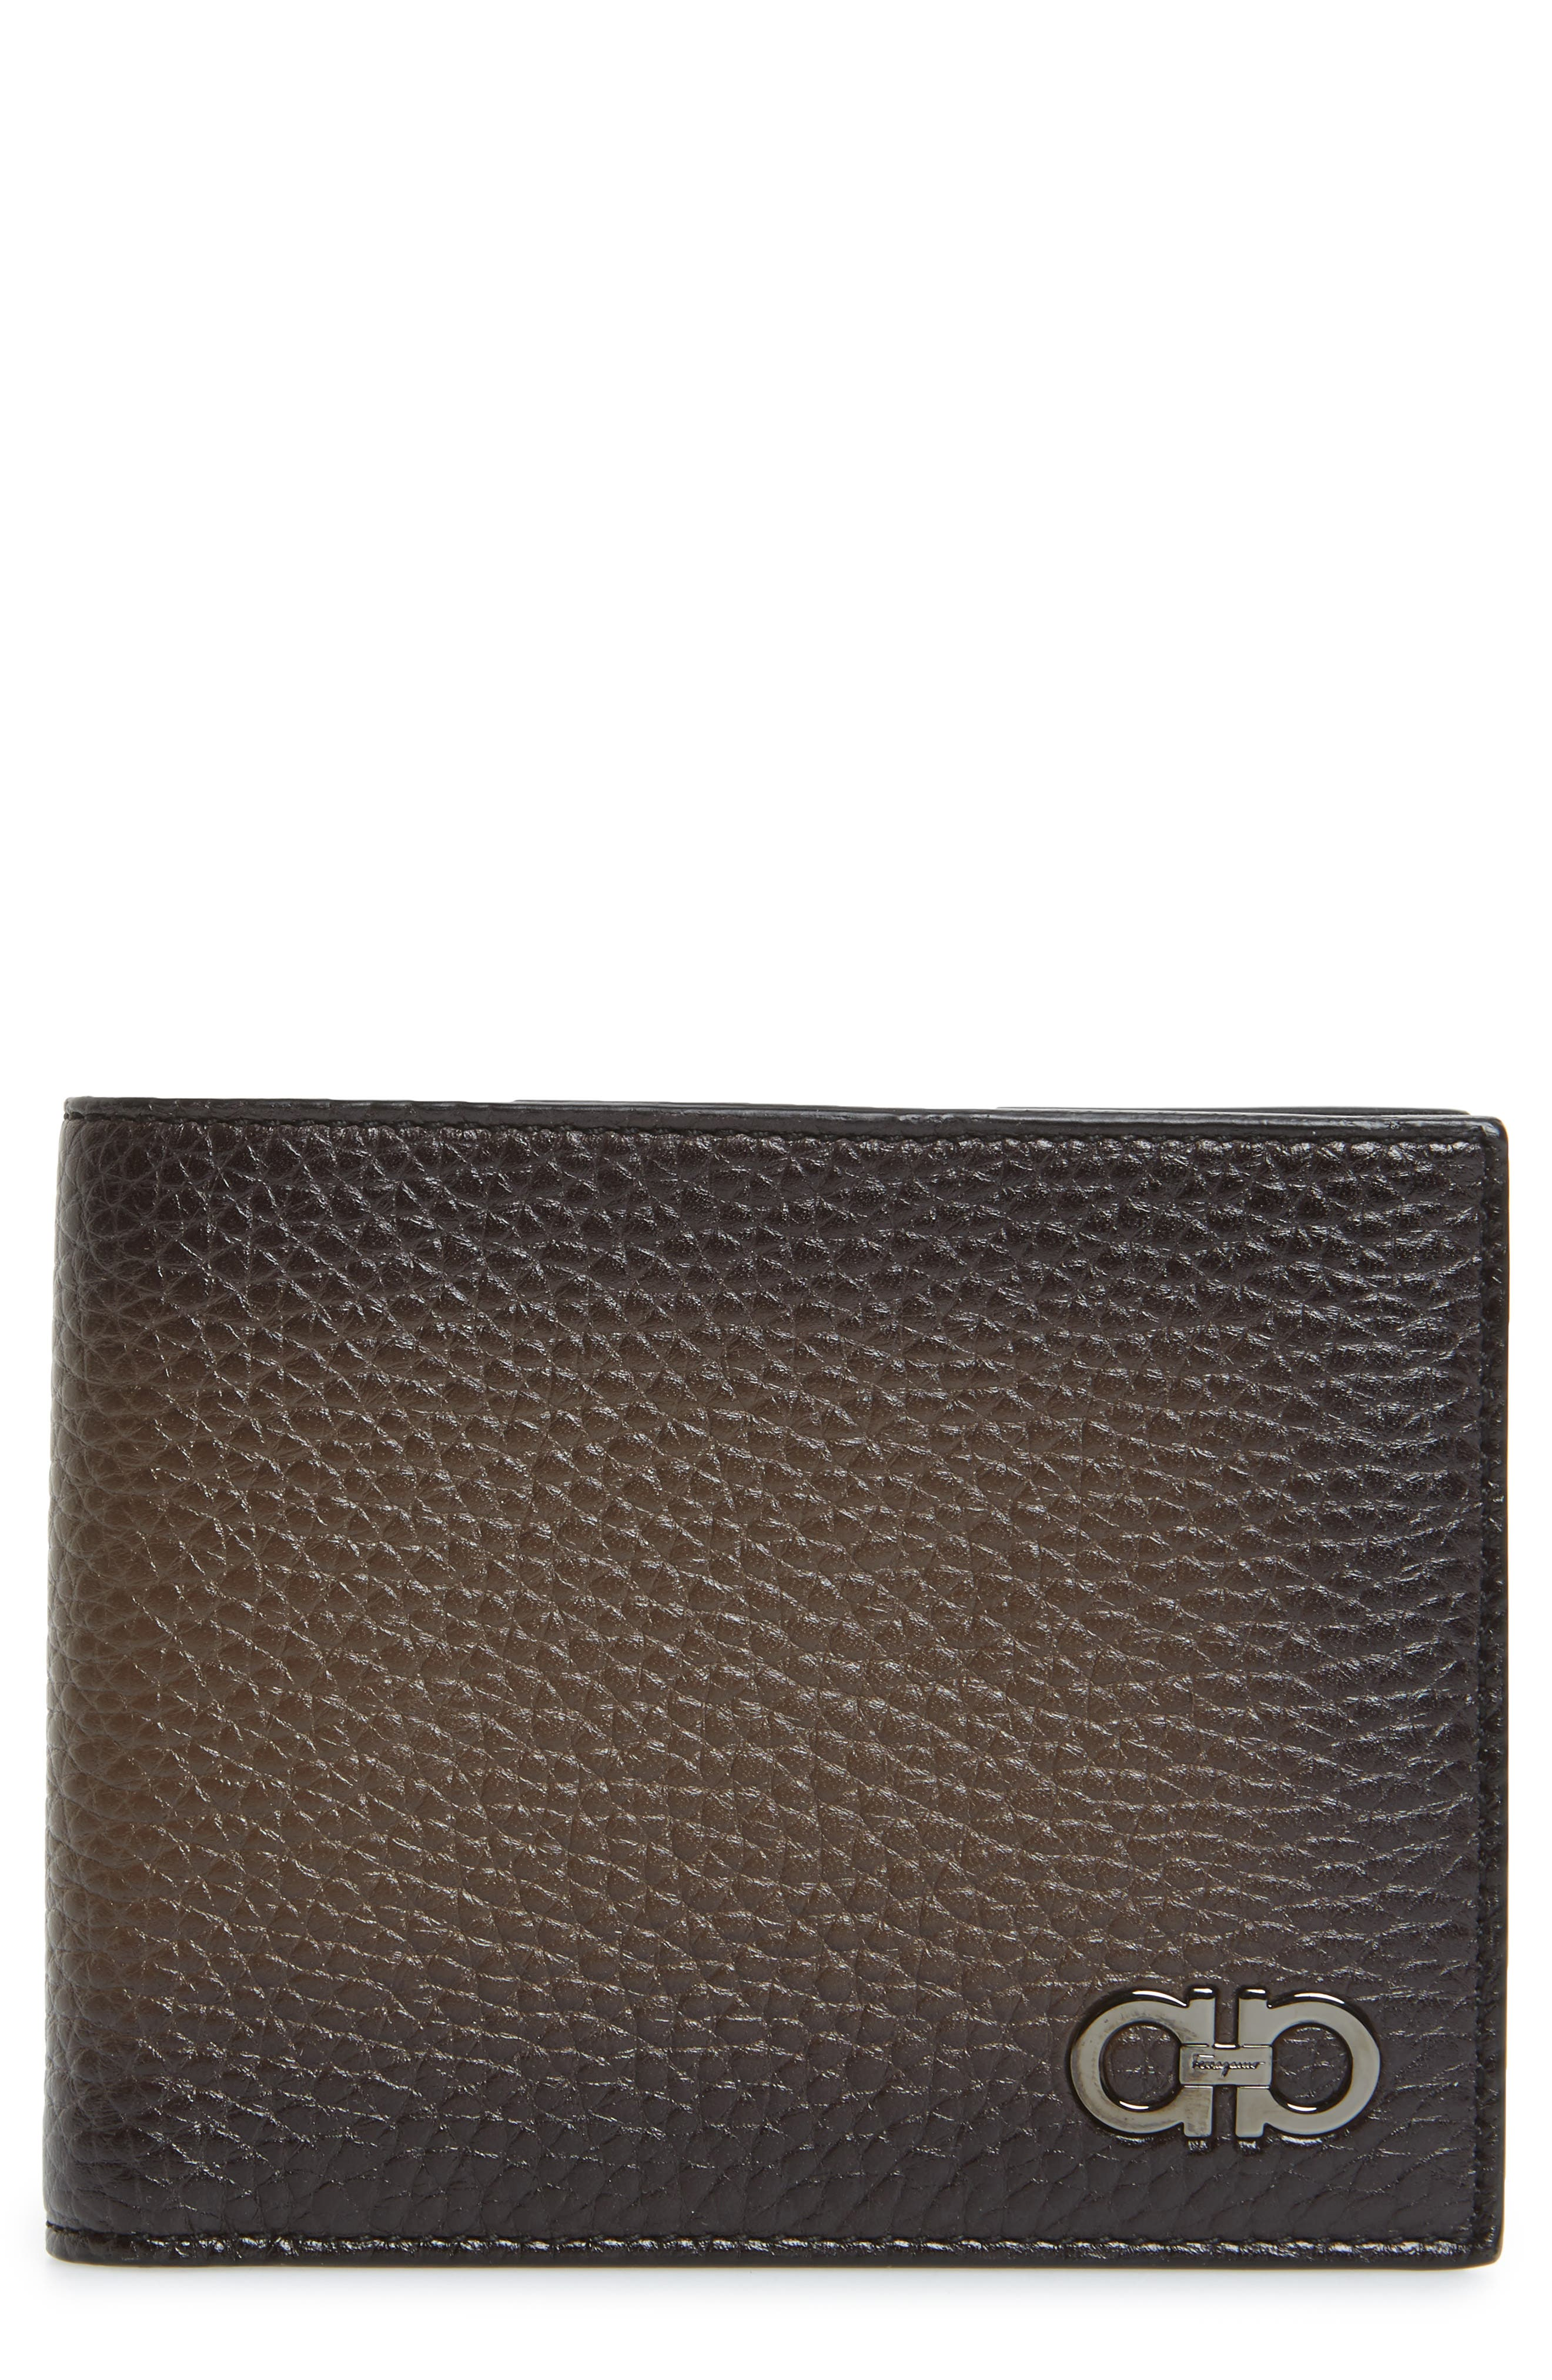 Glow Leather Wallet,                         Main,                         color, Sepia